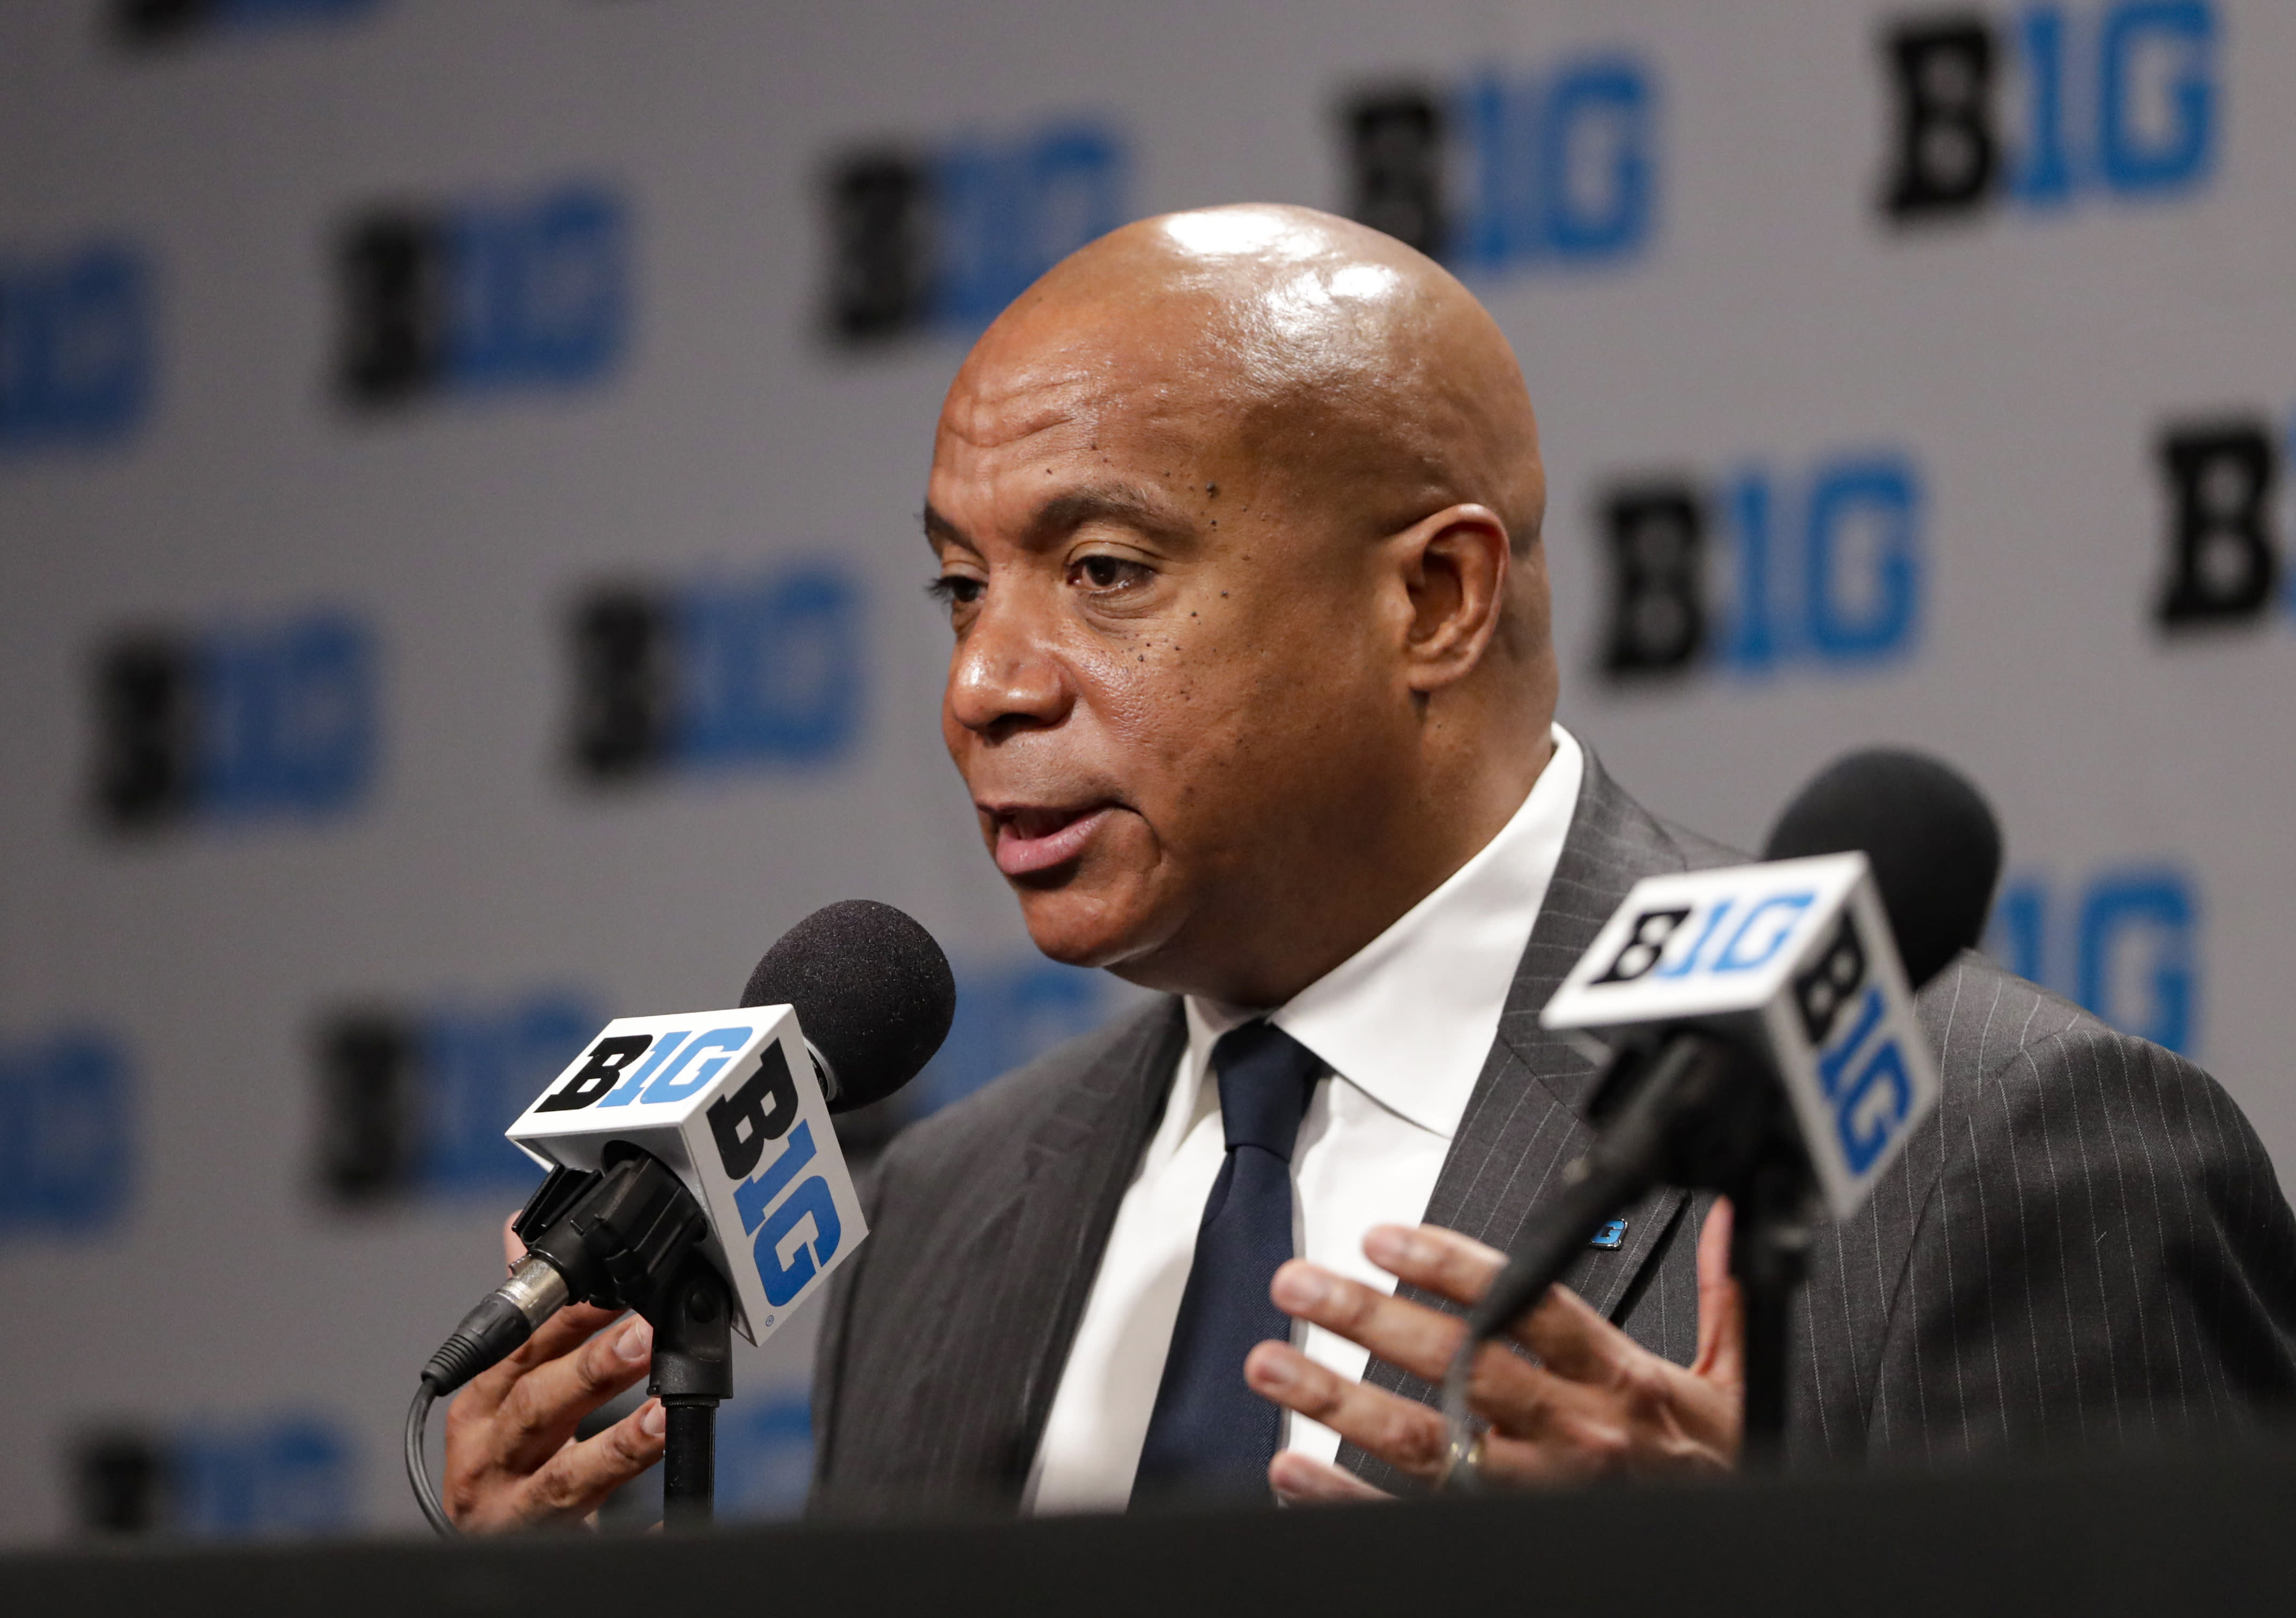 FILE - In this March 12, 2020, file photo, Big Ten Commissioner Kevin Warren addresses the media in Indianapolis after it was announced that the remainder of the Big Ten Conference men's basketball tournament had been canceled. The Big Ten has created a voter registration initiative to go along with its Anti-Hate and Anti-Racism Coalition. The conference hopes its 14 schools and thousands of student-athletes can leverage their platform to spur social change. Warren said the announcement of the voting initiative finalizes plans that have been in the works since February. (AP Photo/Michael Conroy, File)